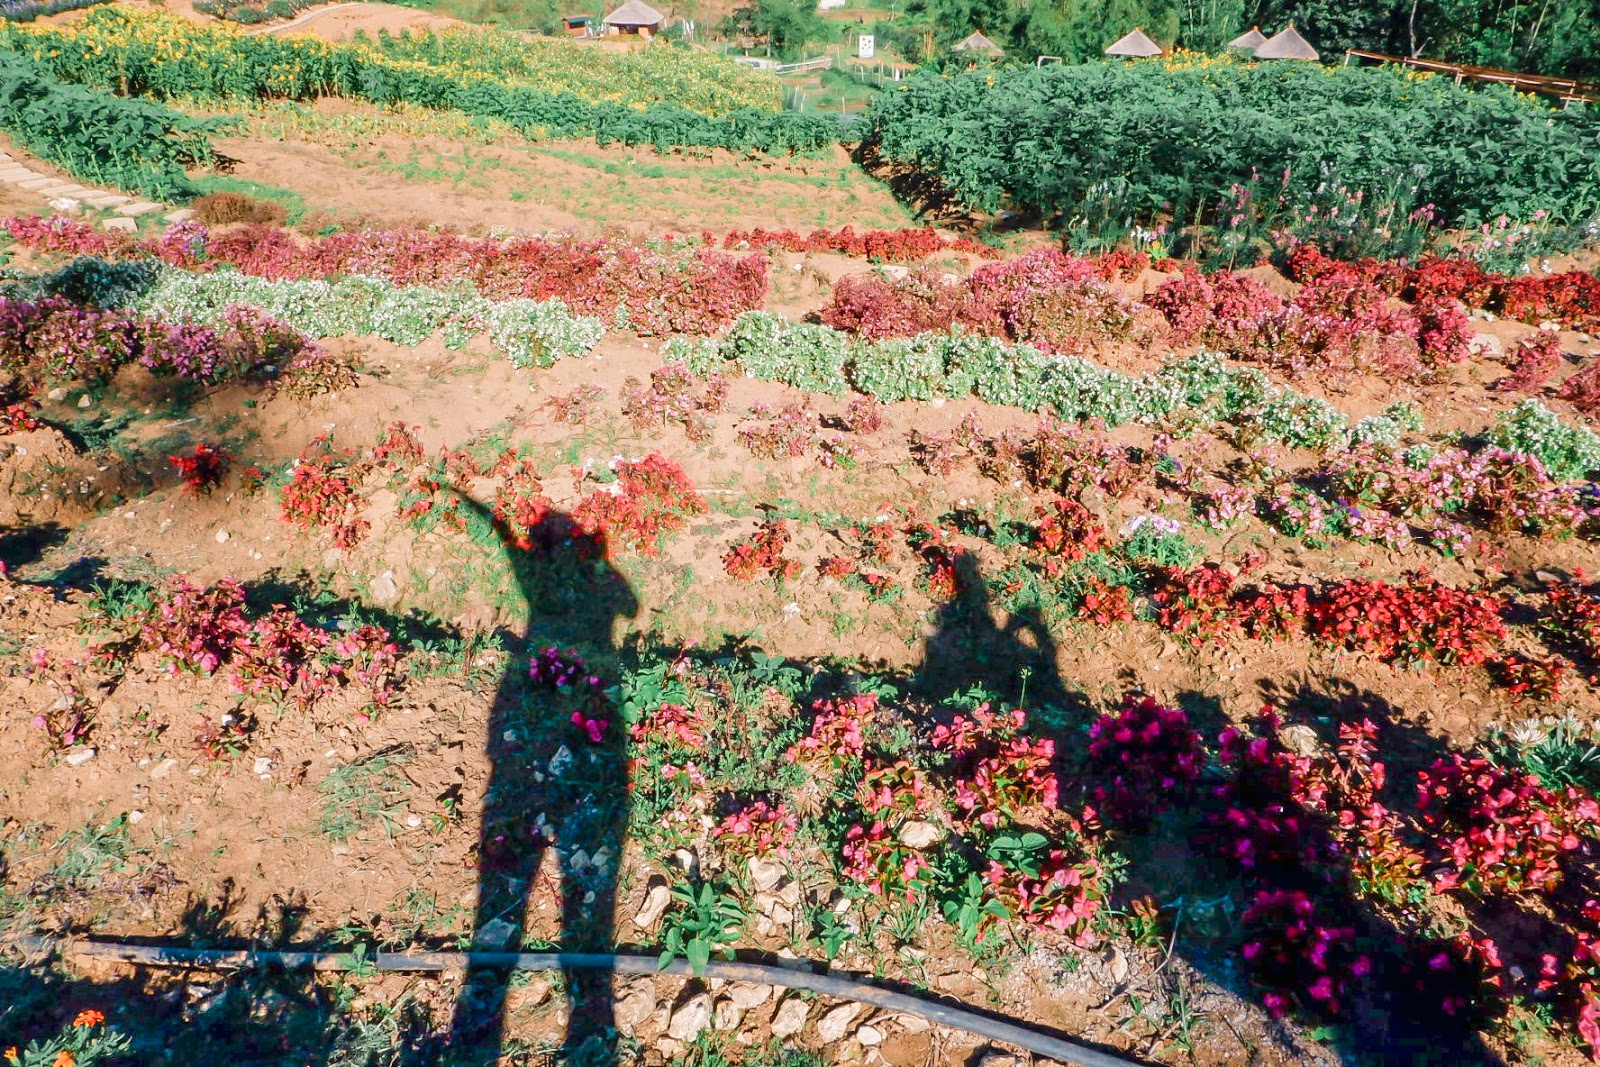 Side Trip from Mt. Kandungaw to Mt. Talongon Flower Garden